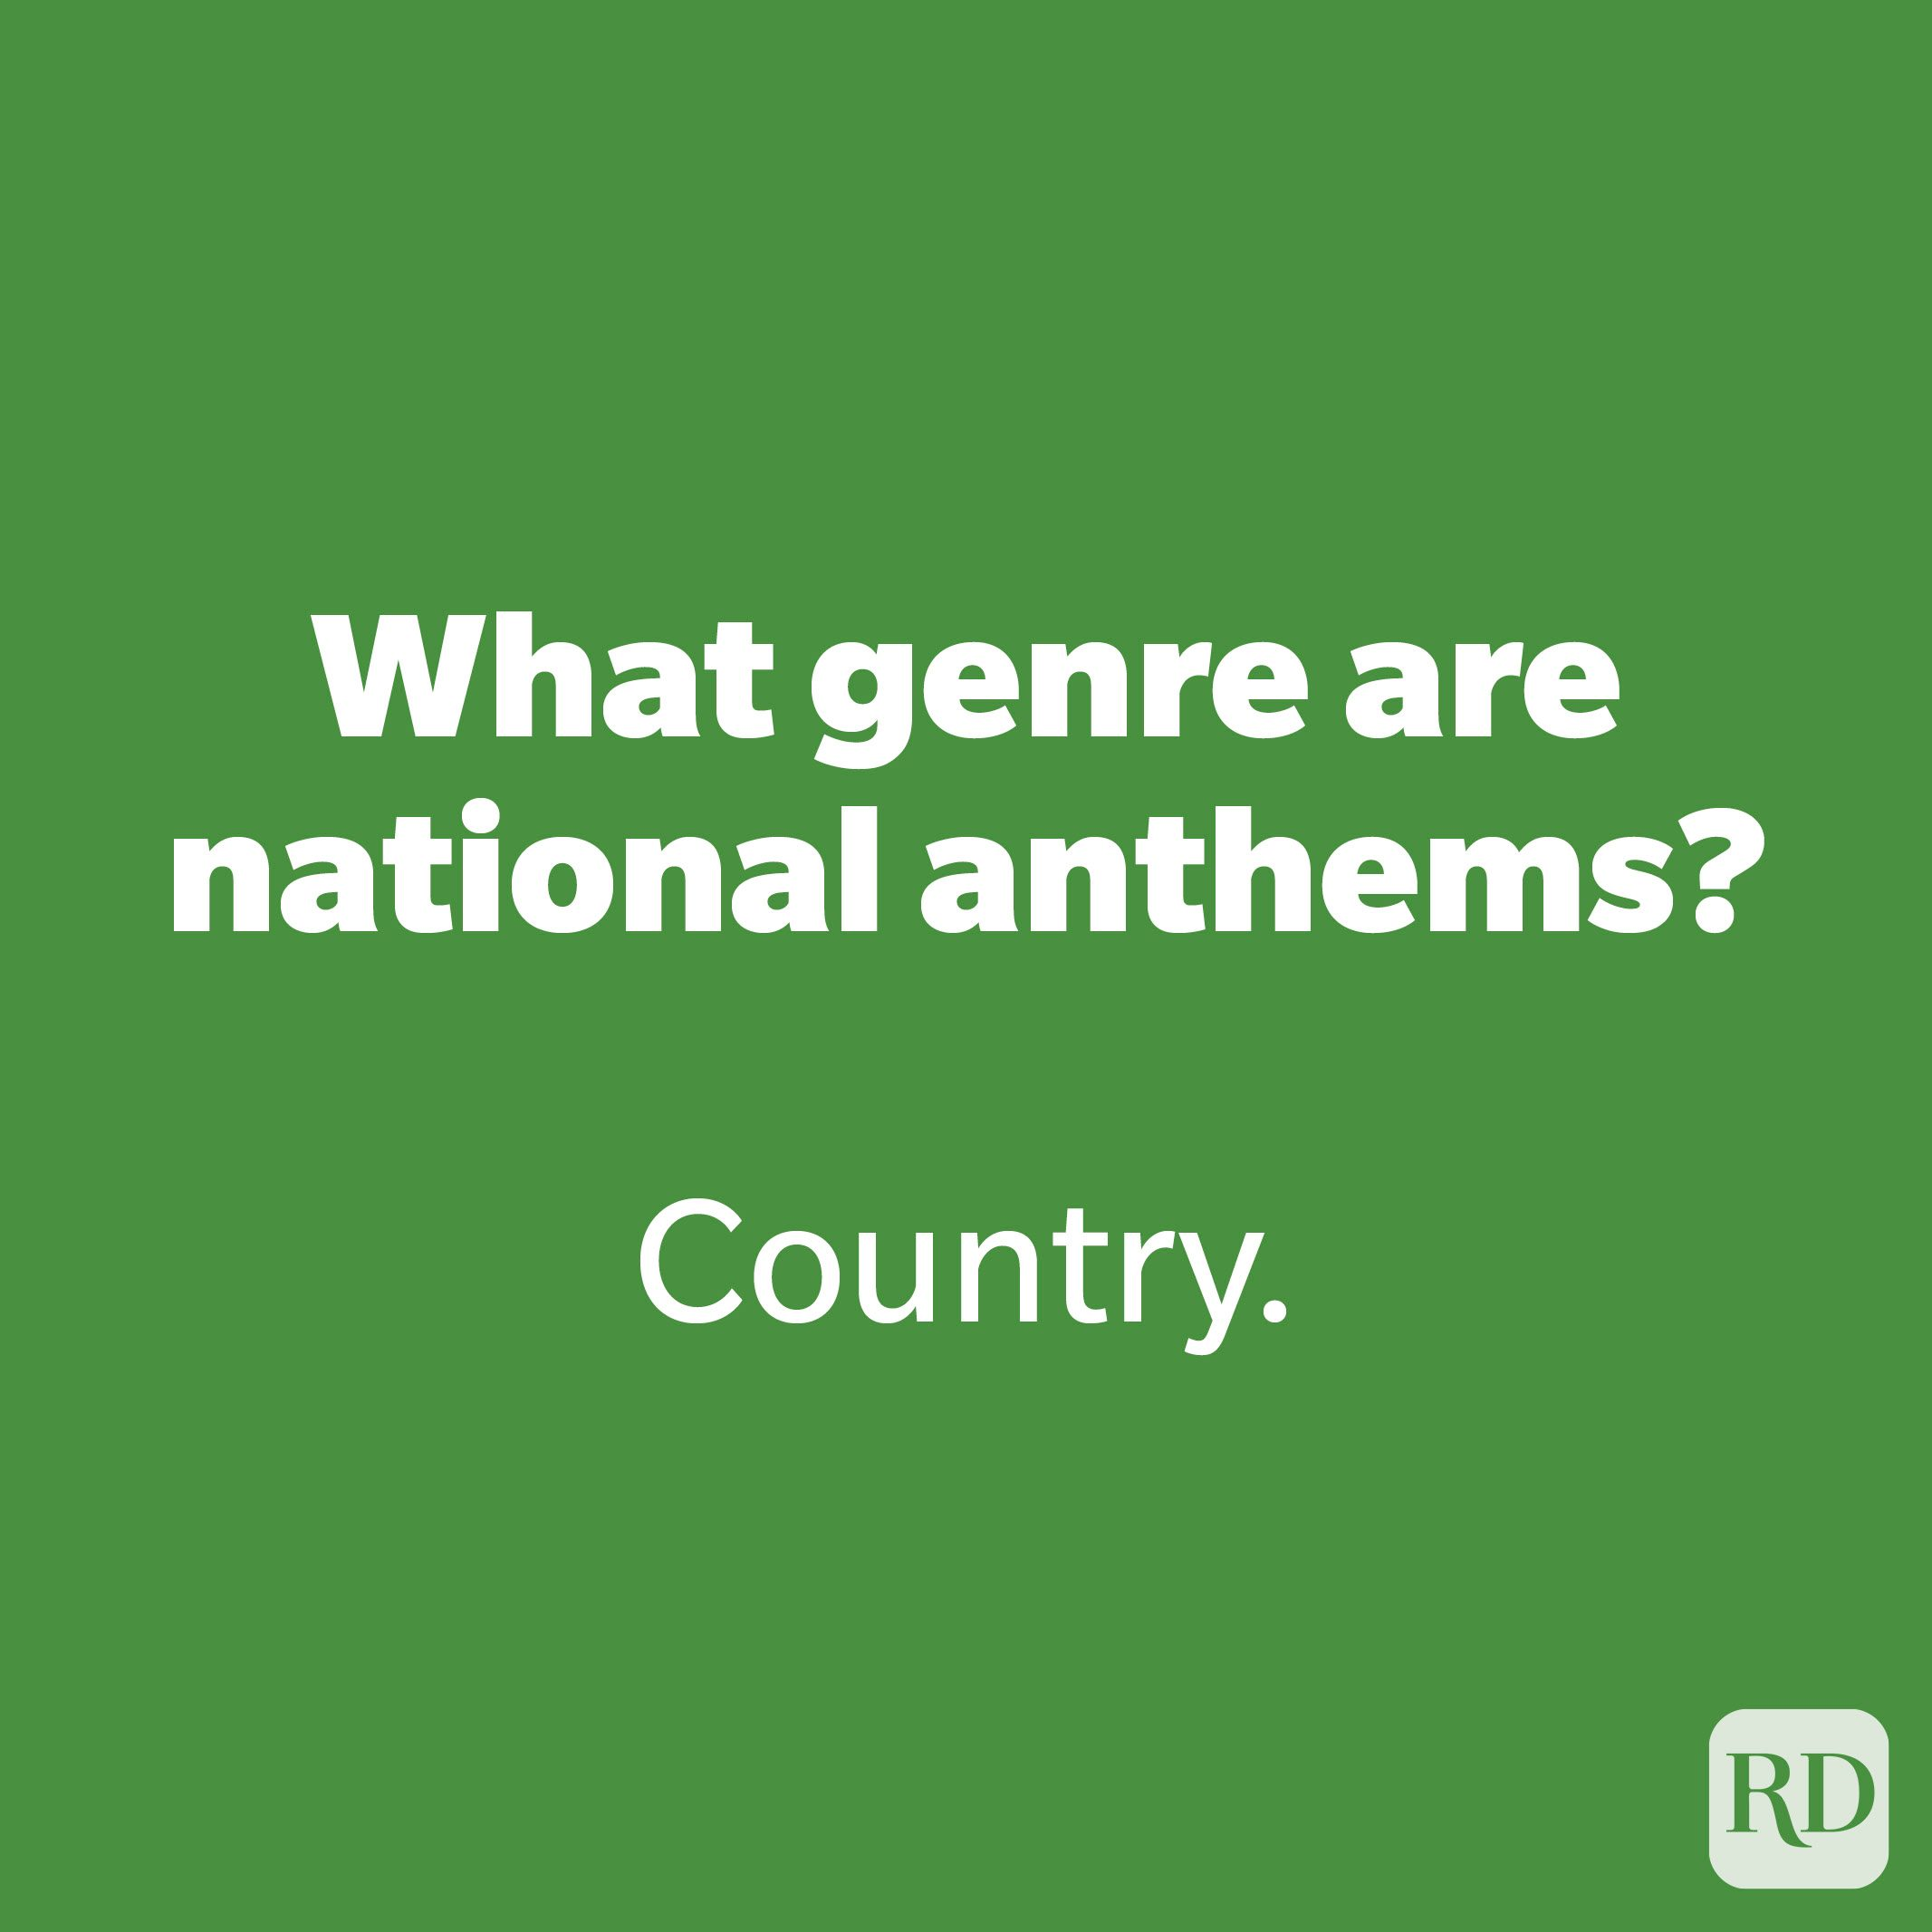 What genre are national anthems?